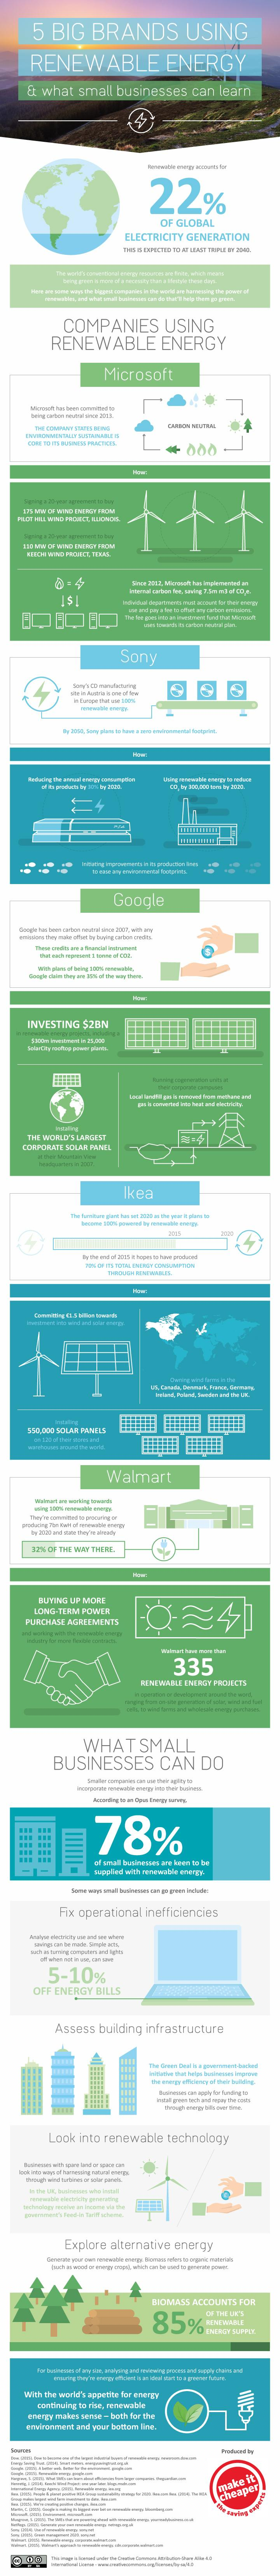 business-energy-infographic